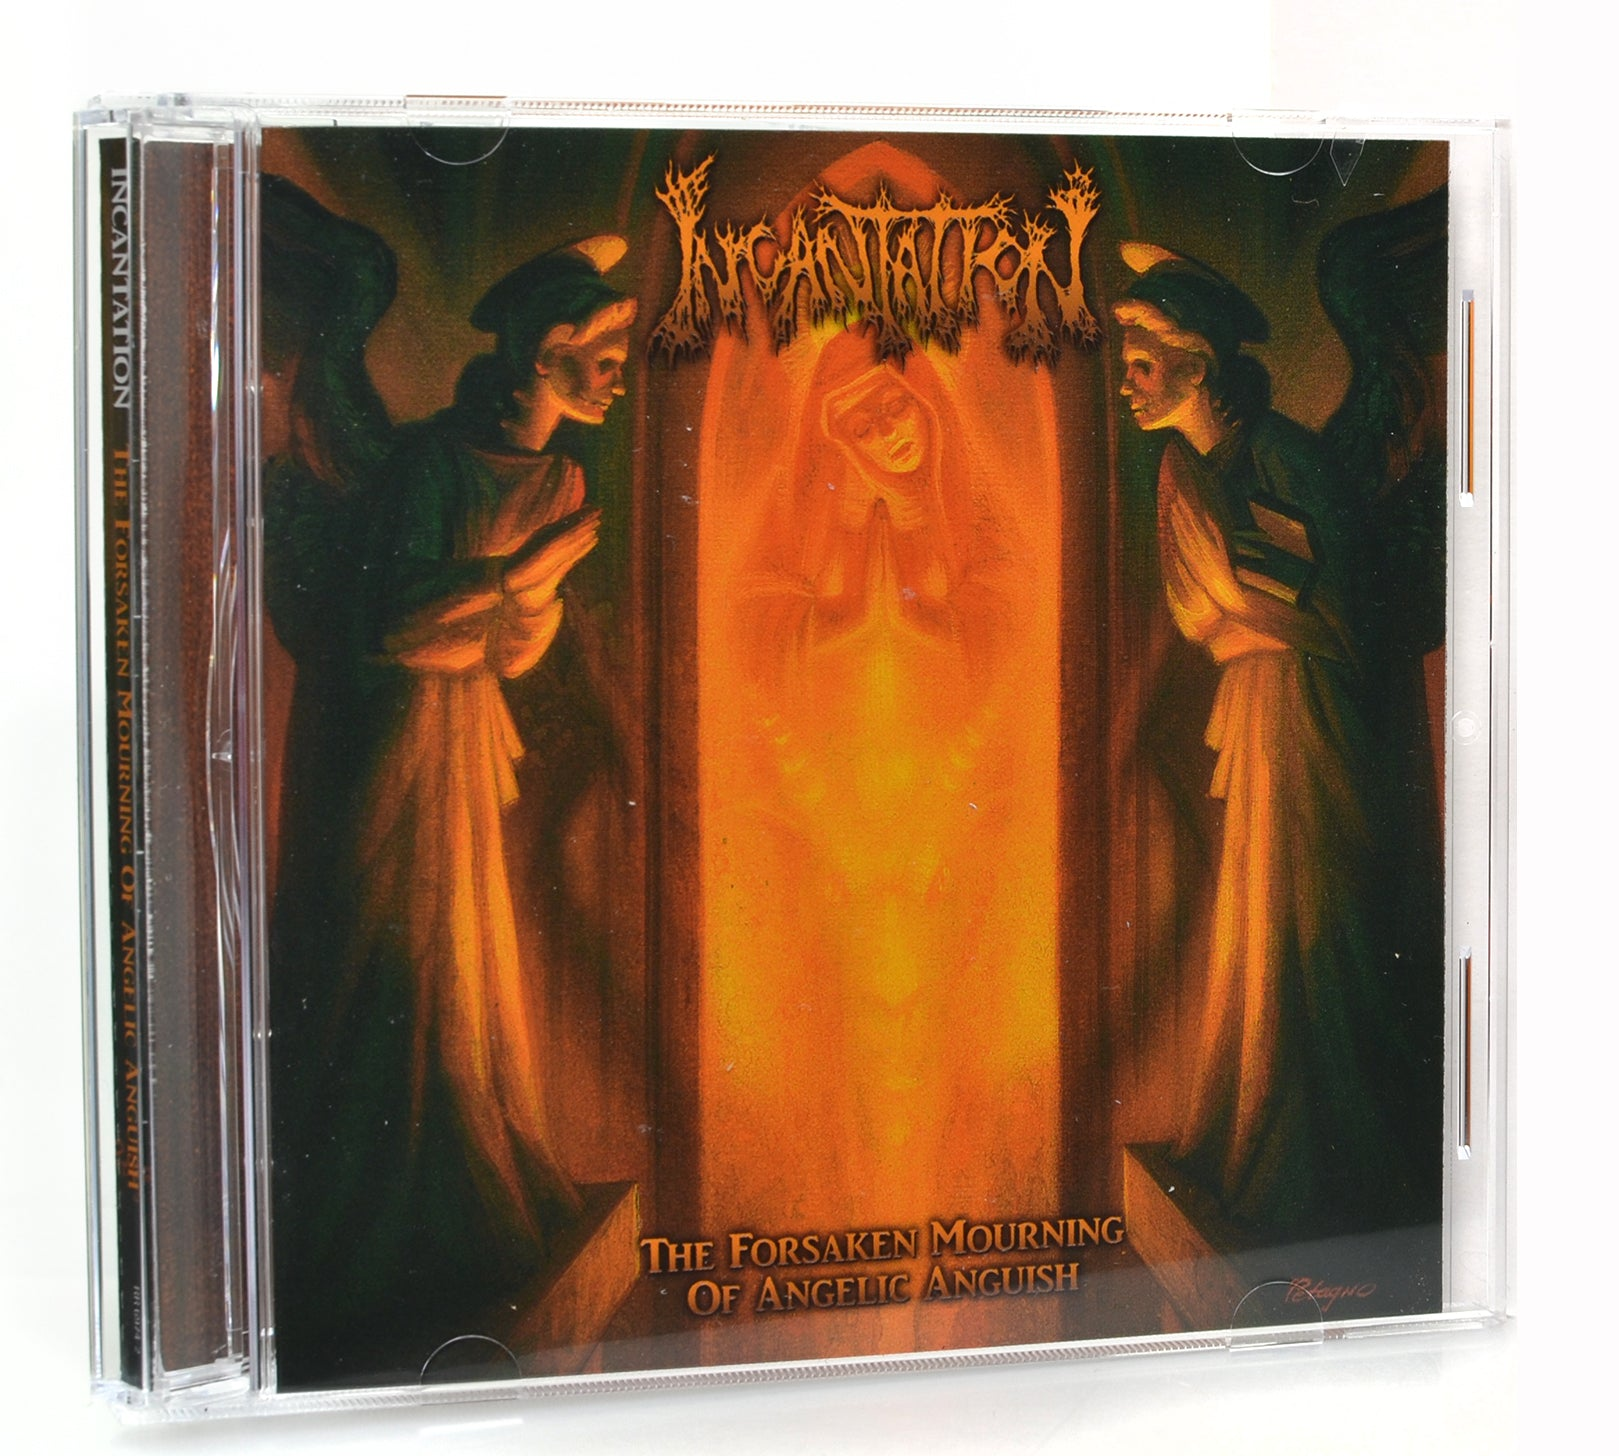 Incantation - Forsaken Mourning Of Angelic Anguish (CD)